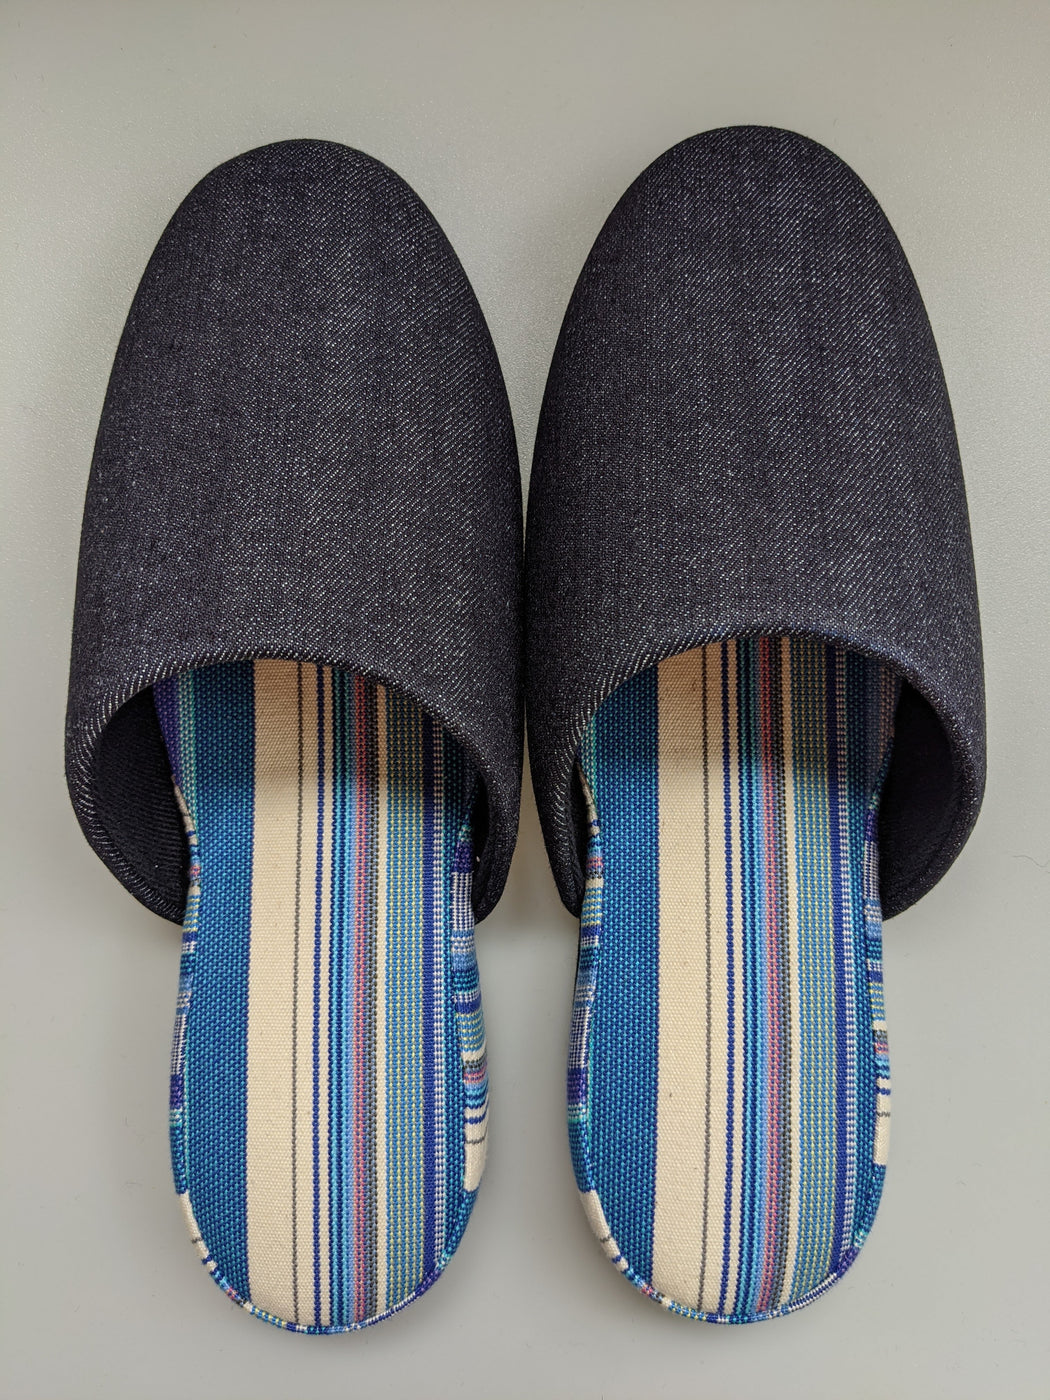 Denim Mix Slippers [Black wool felt sole] (Stripe: Limited Quantity) 3 size: Medium / Large / XL